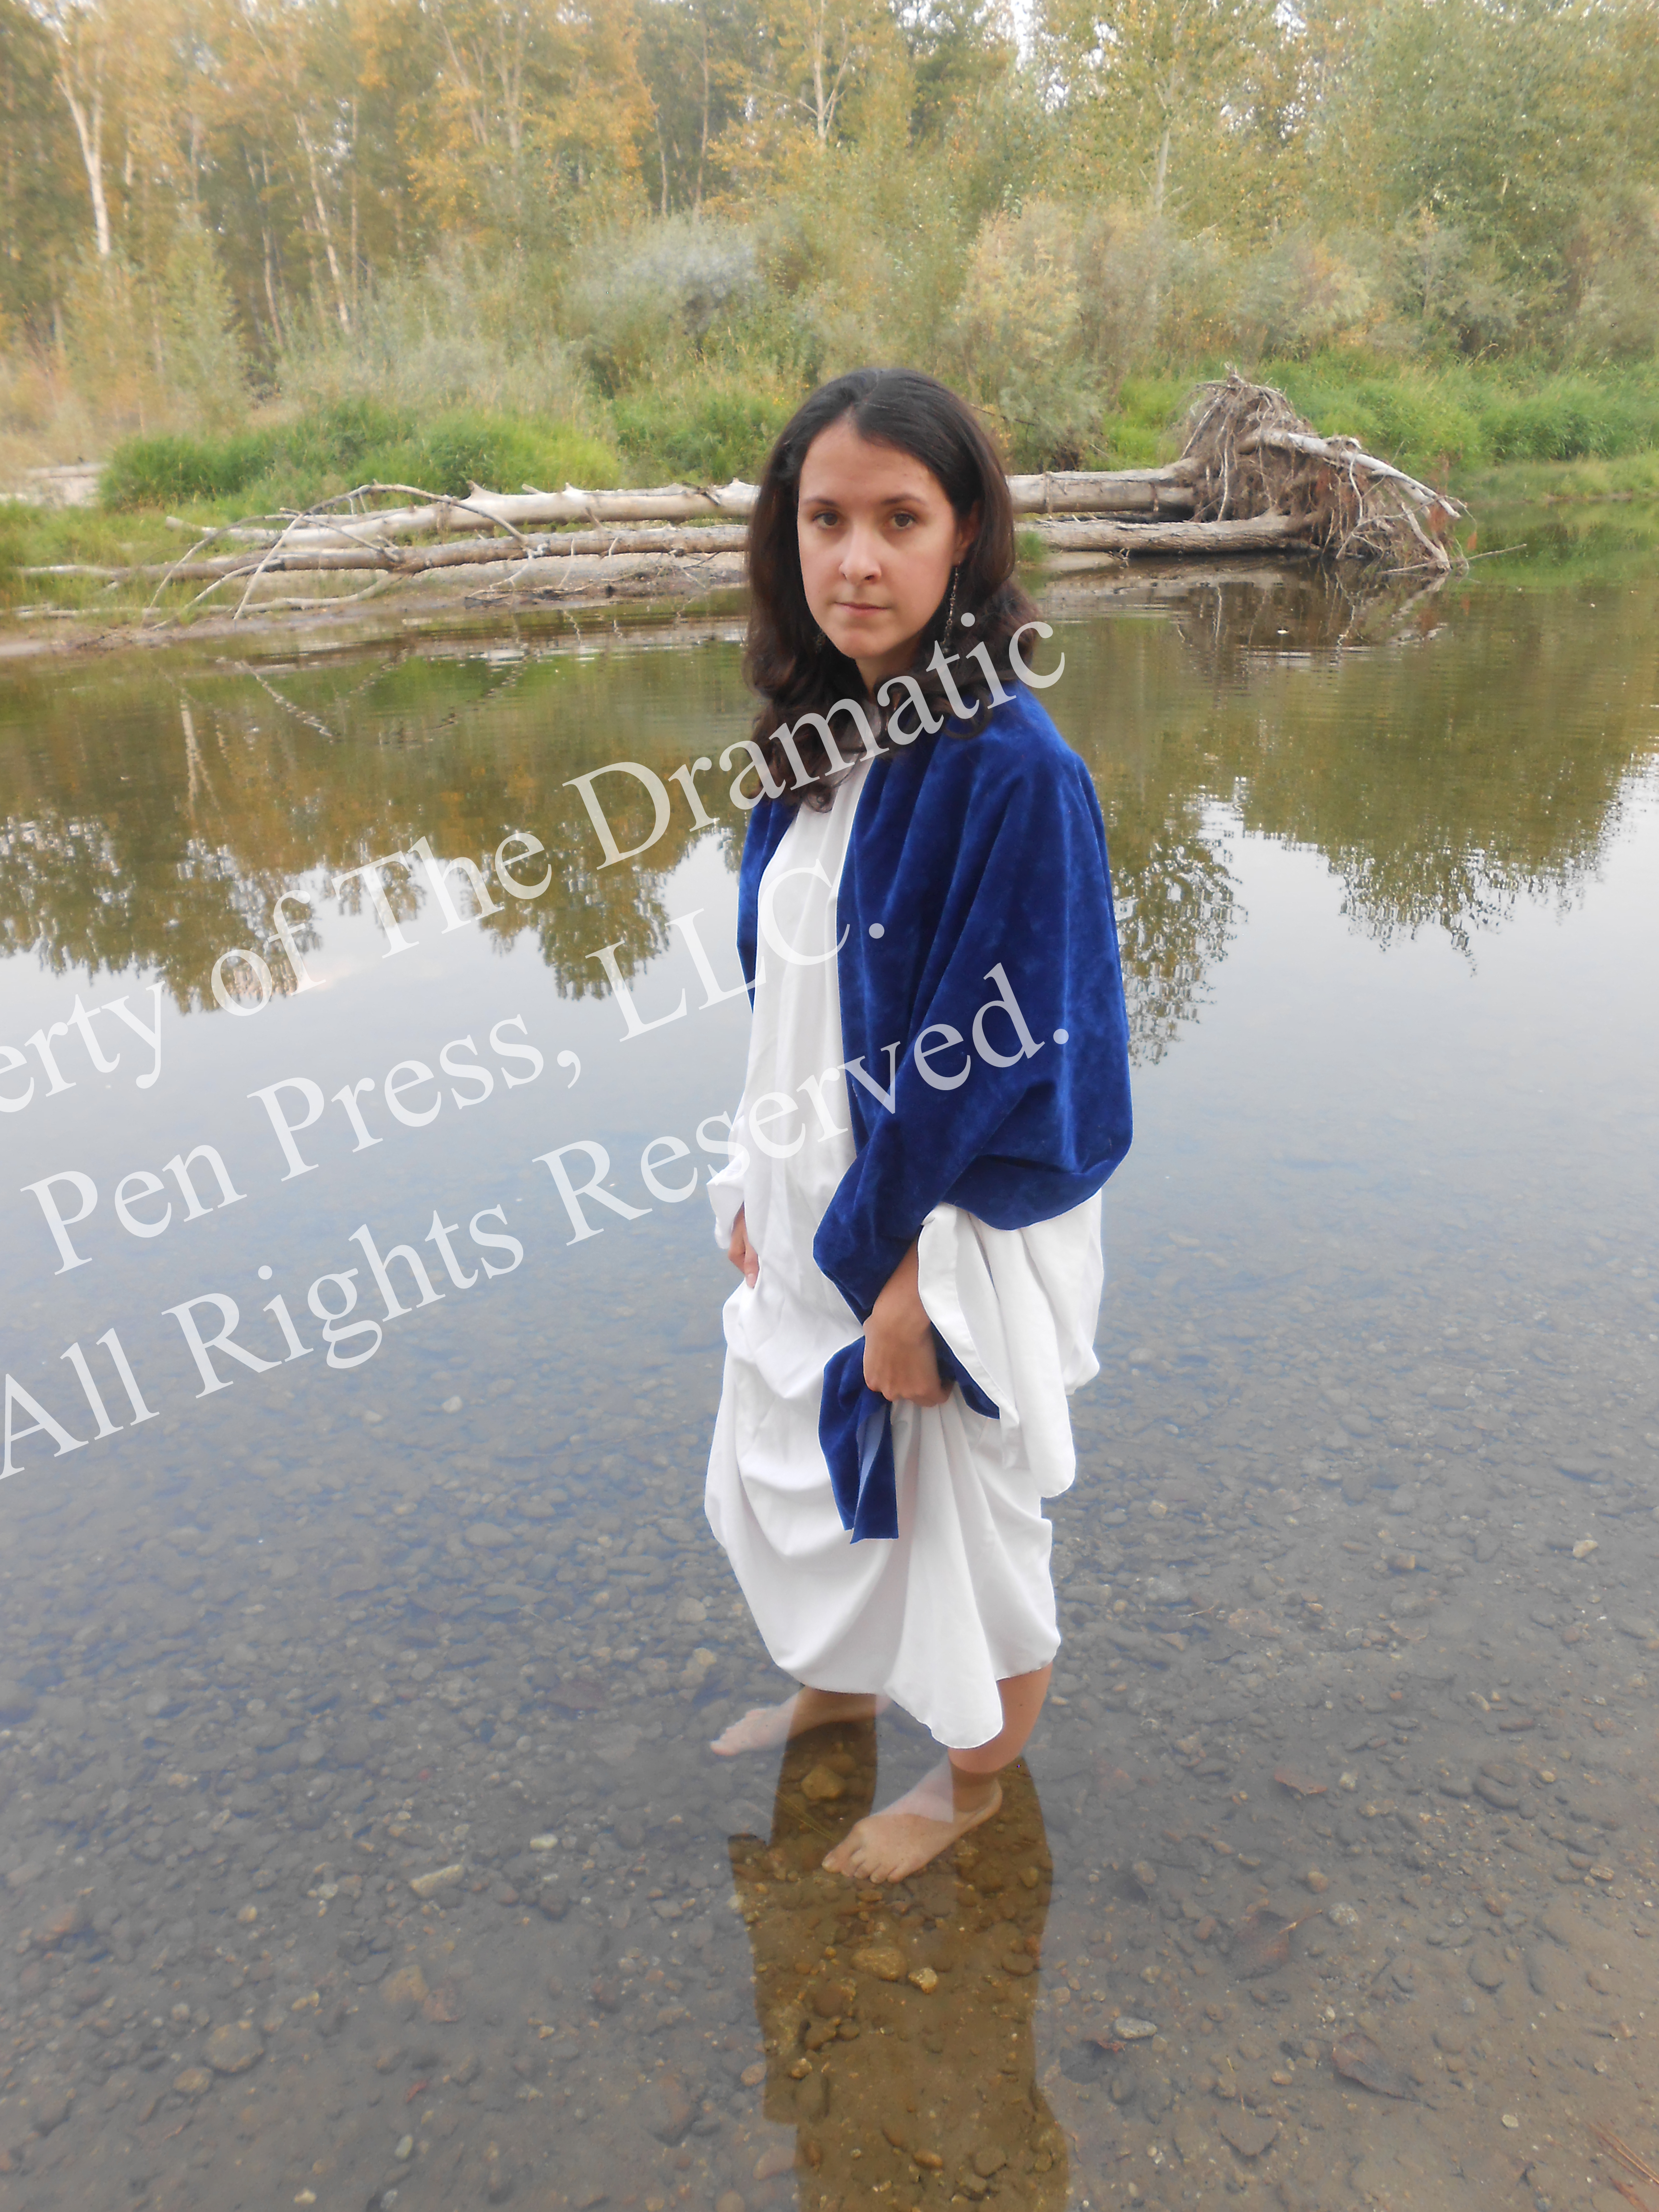 Biblical Woman Stands in River